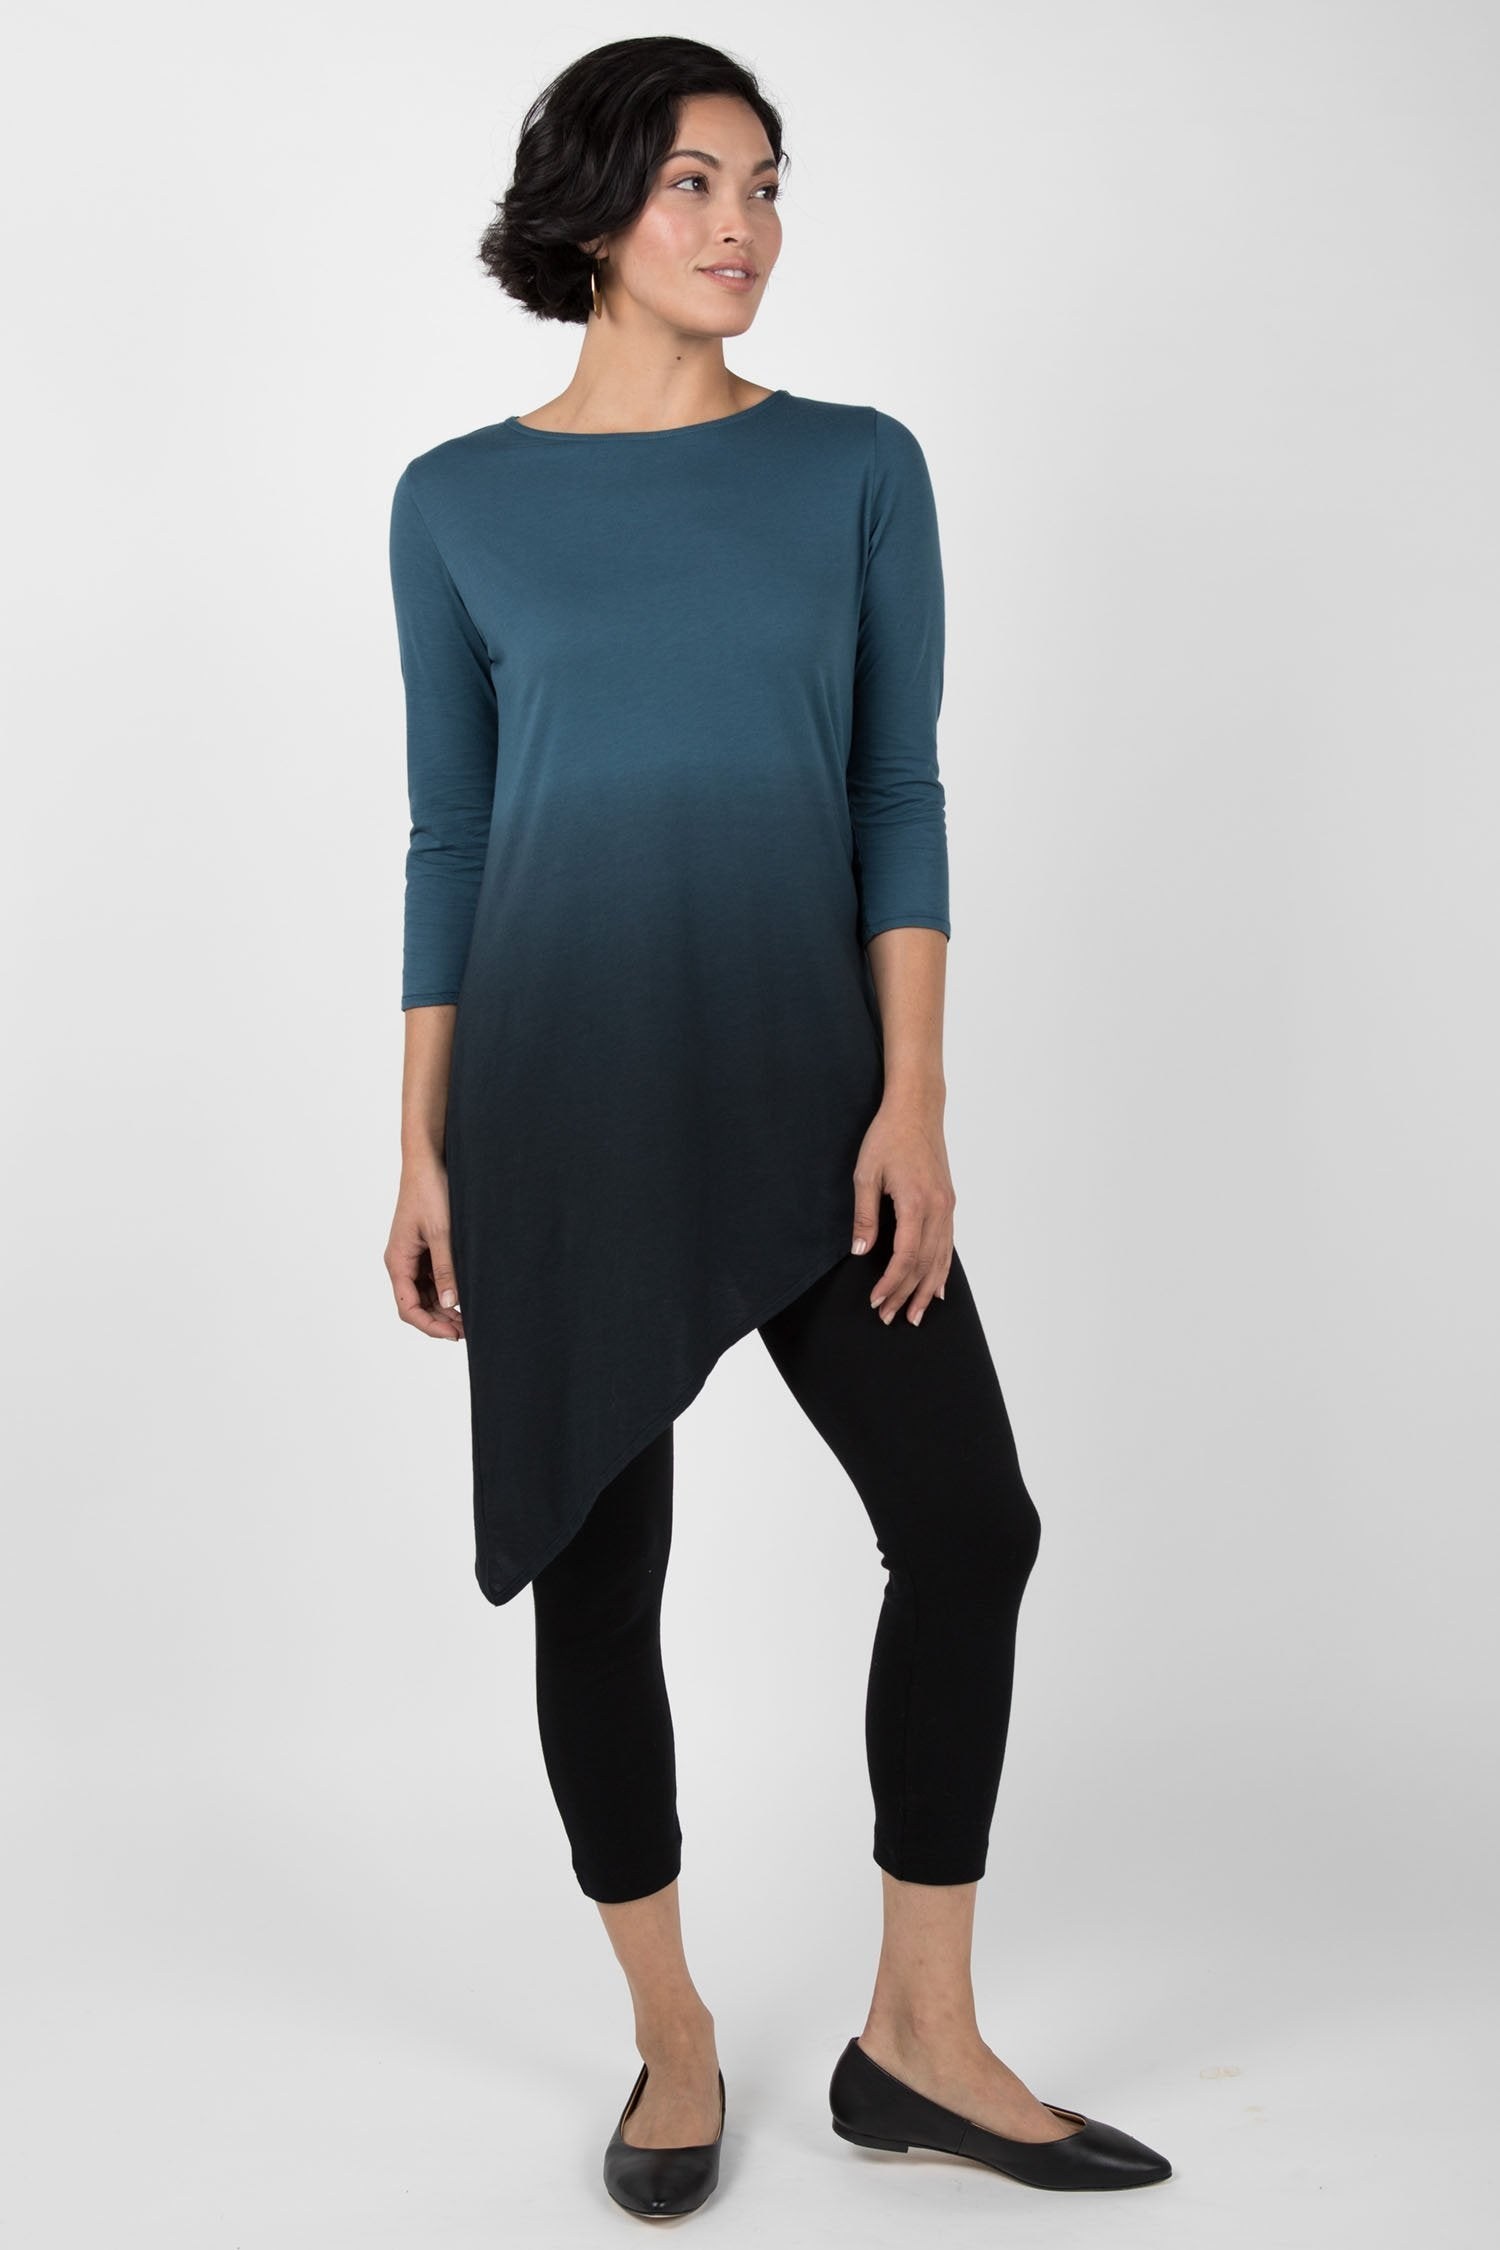 Ombre Tunic Top